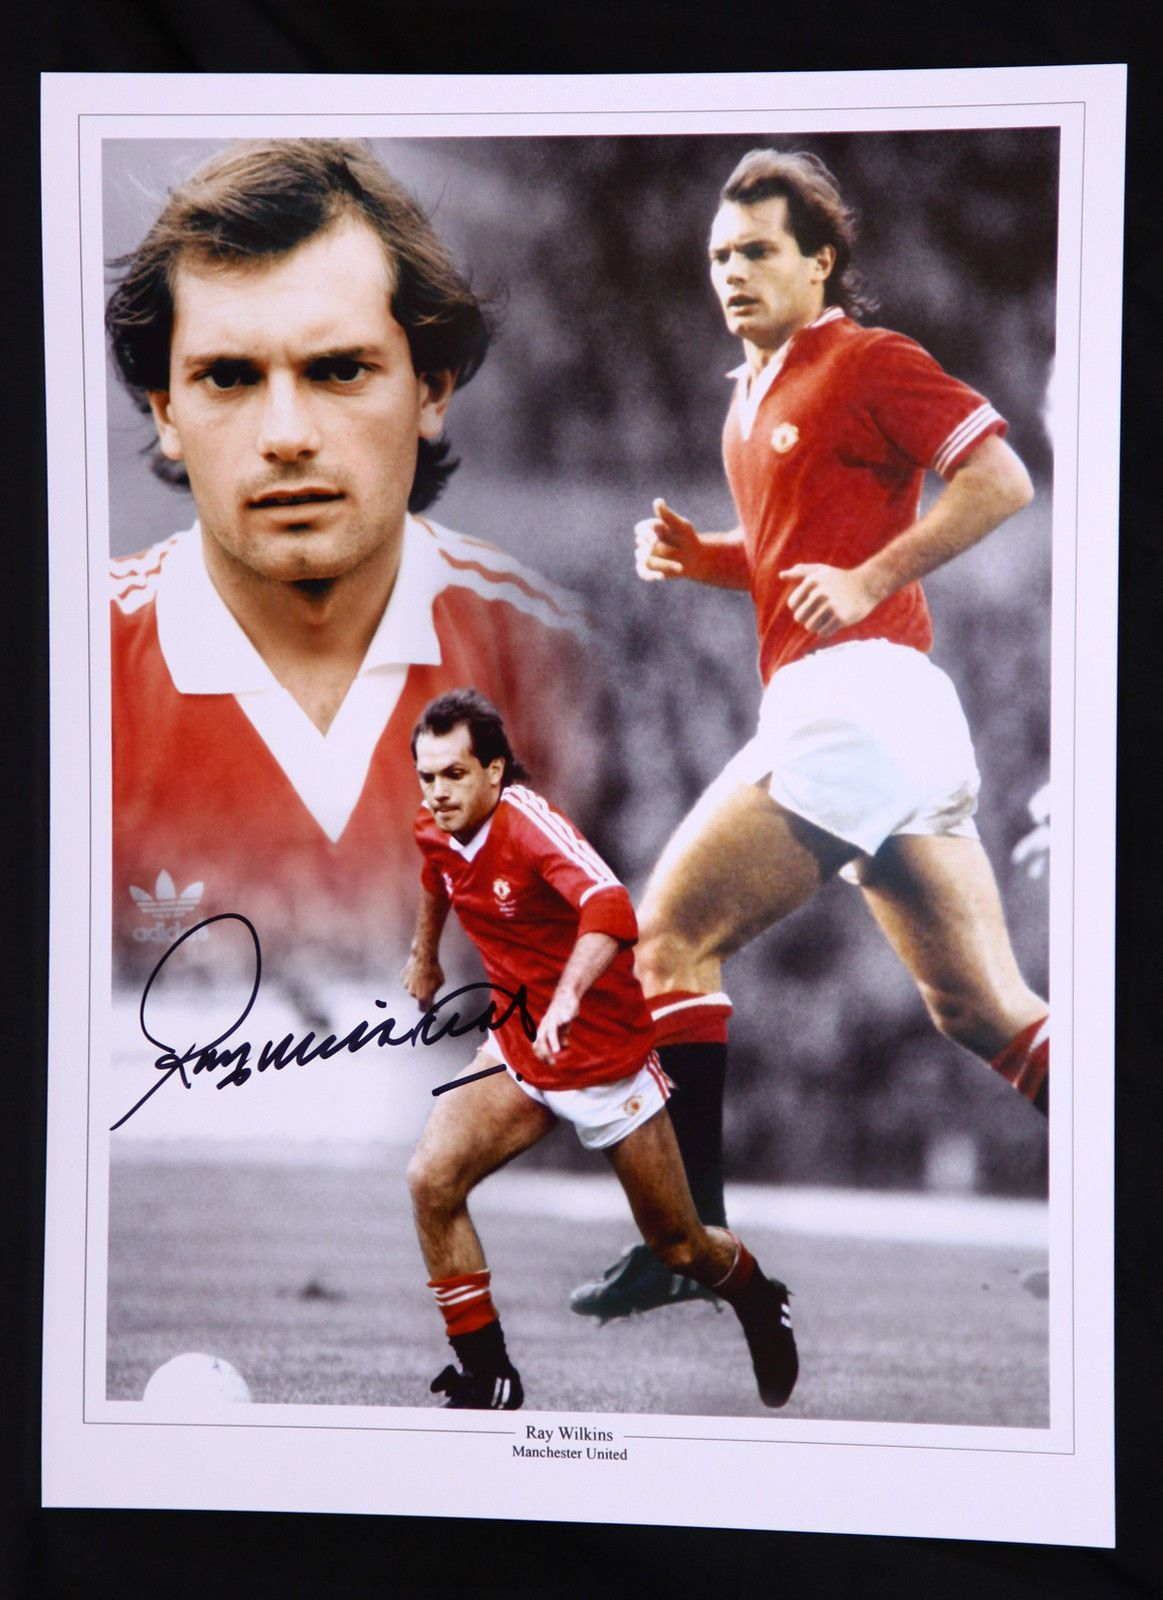 New Ray Wilkins Manchester United Signed 12x16 Football Photograph